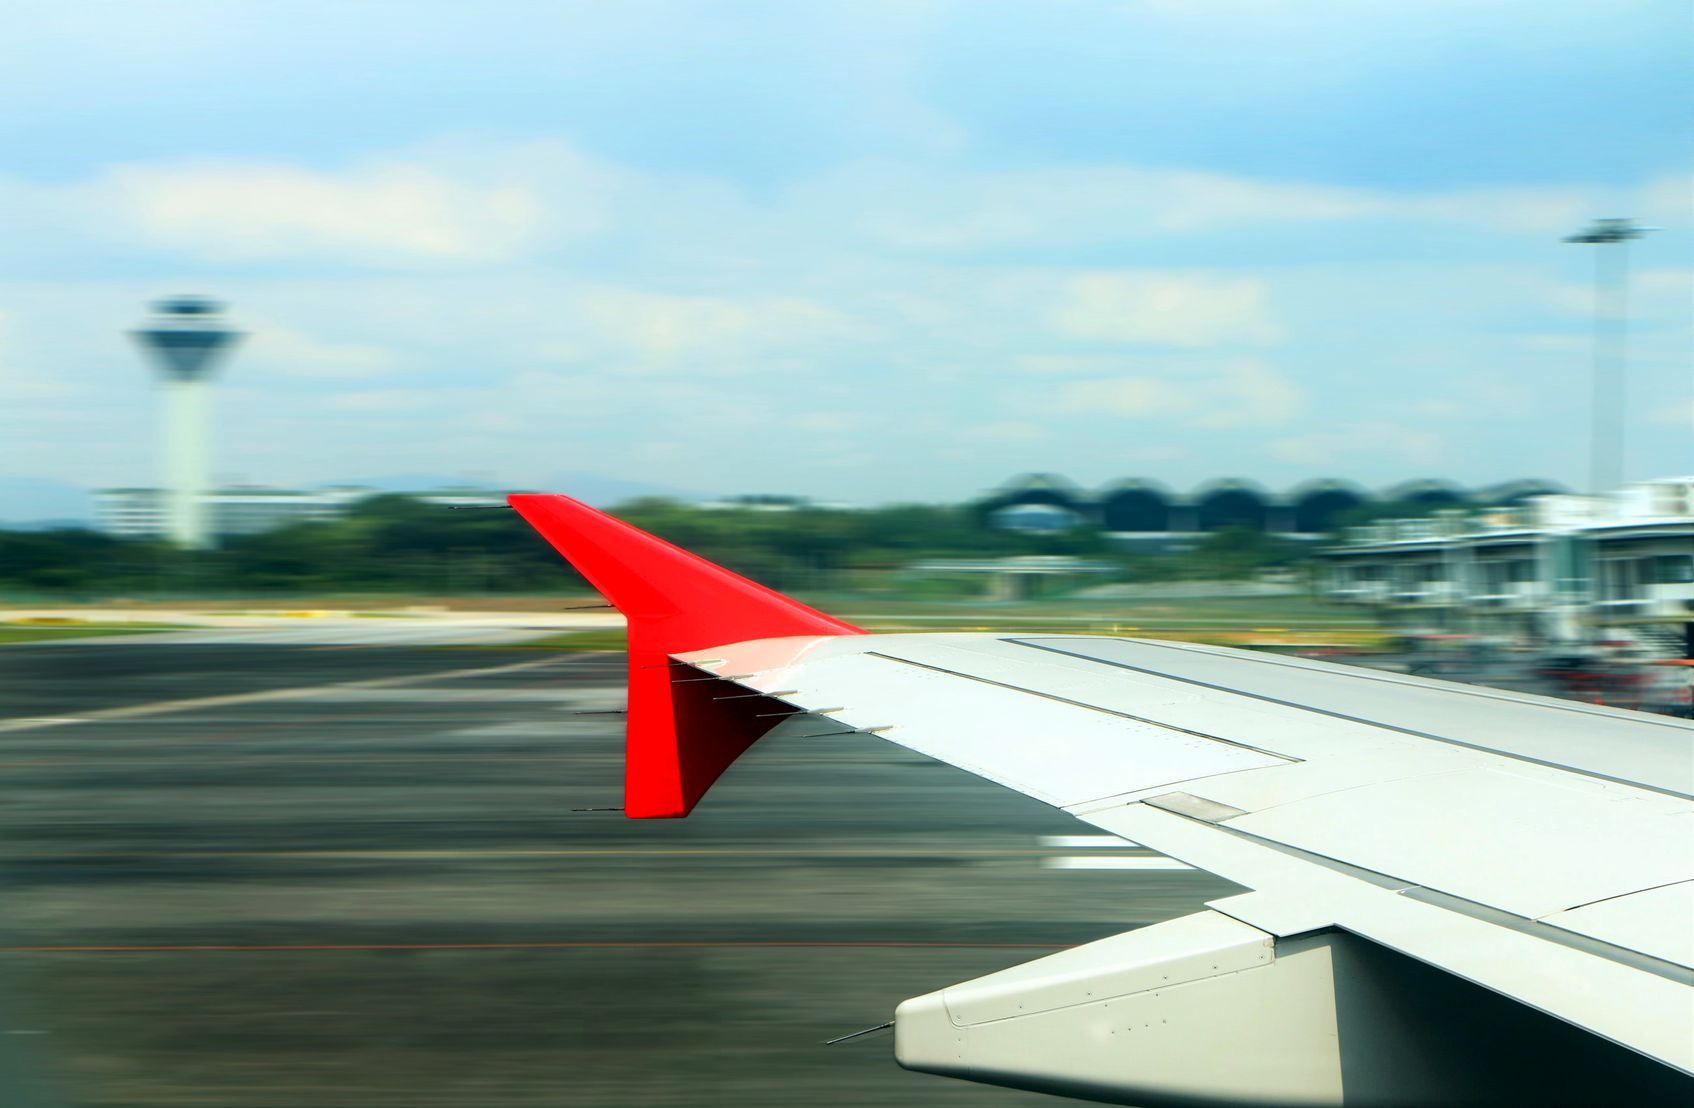 53591443 - airplane take off from window view with blur motion